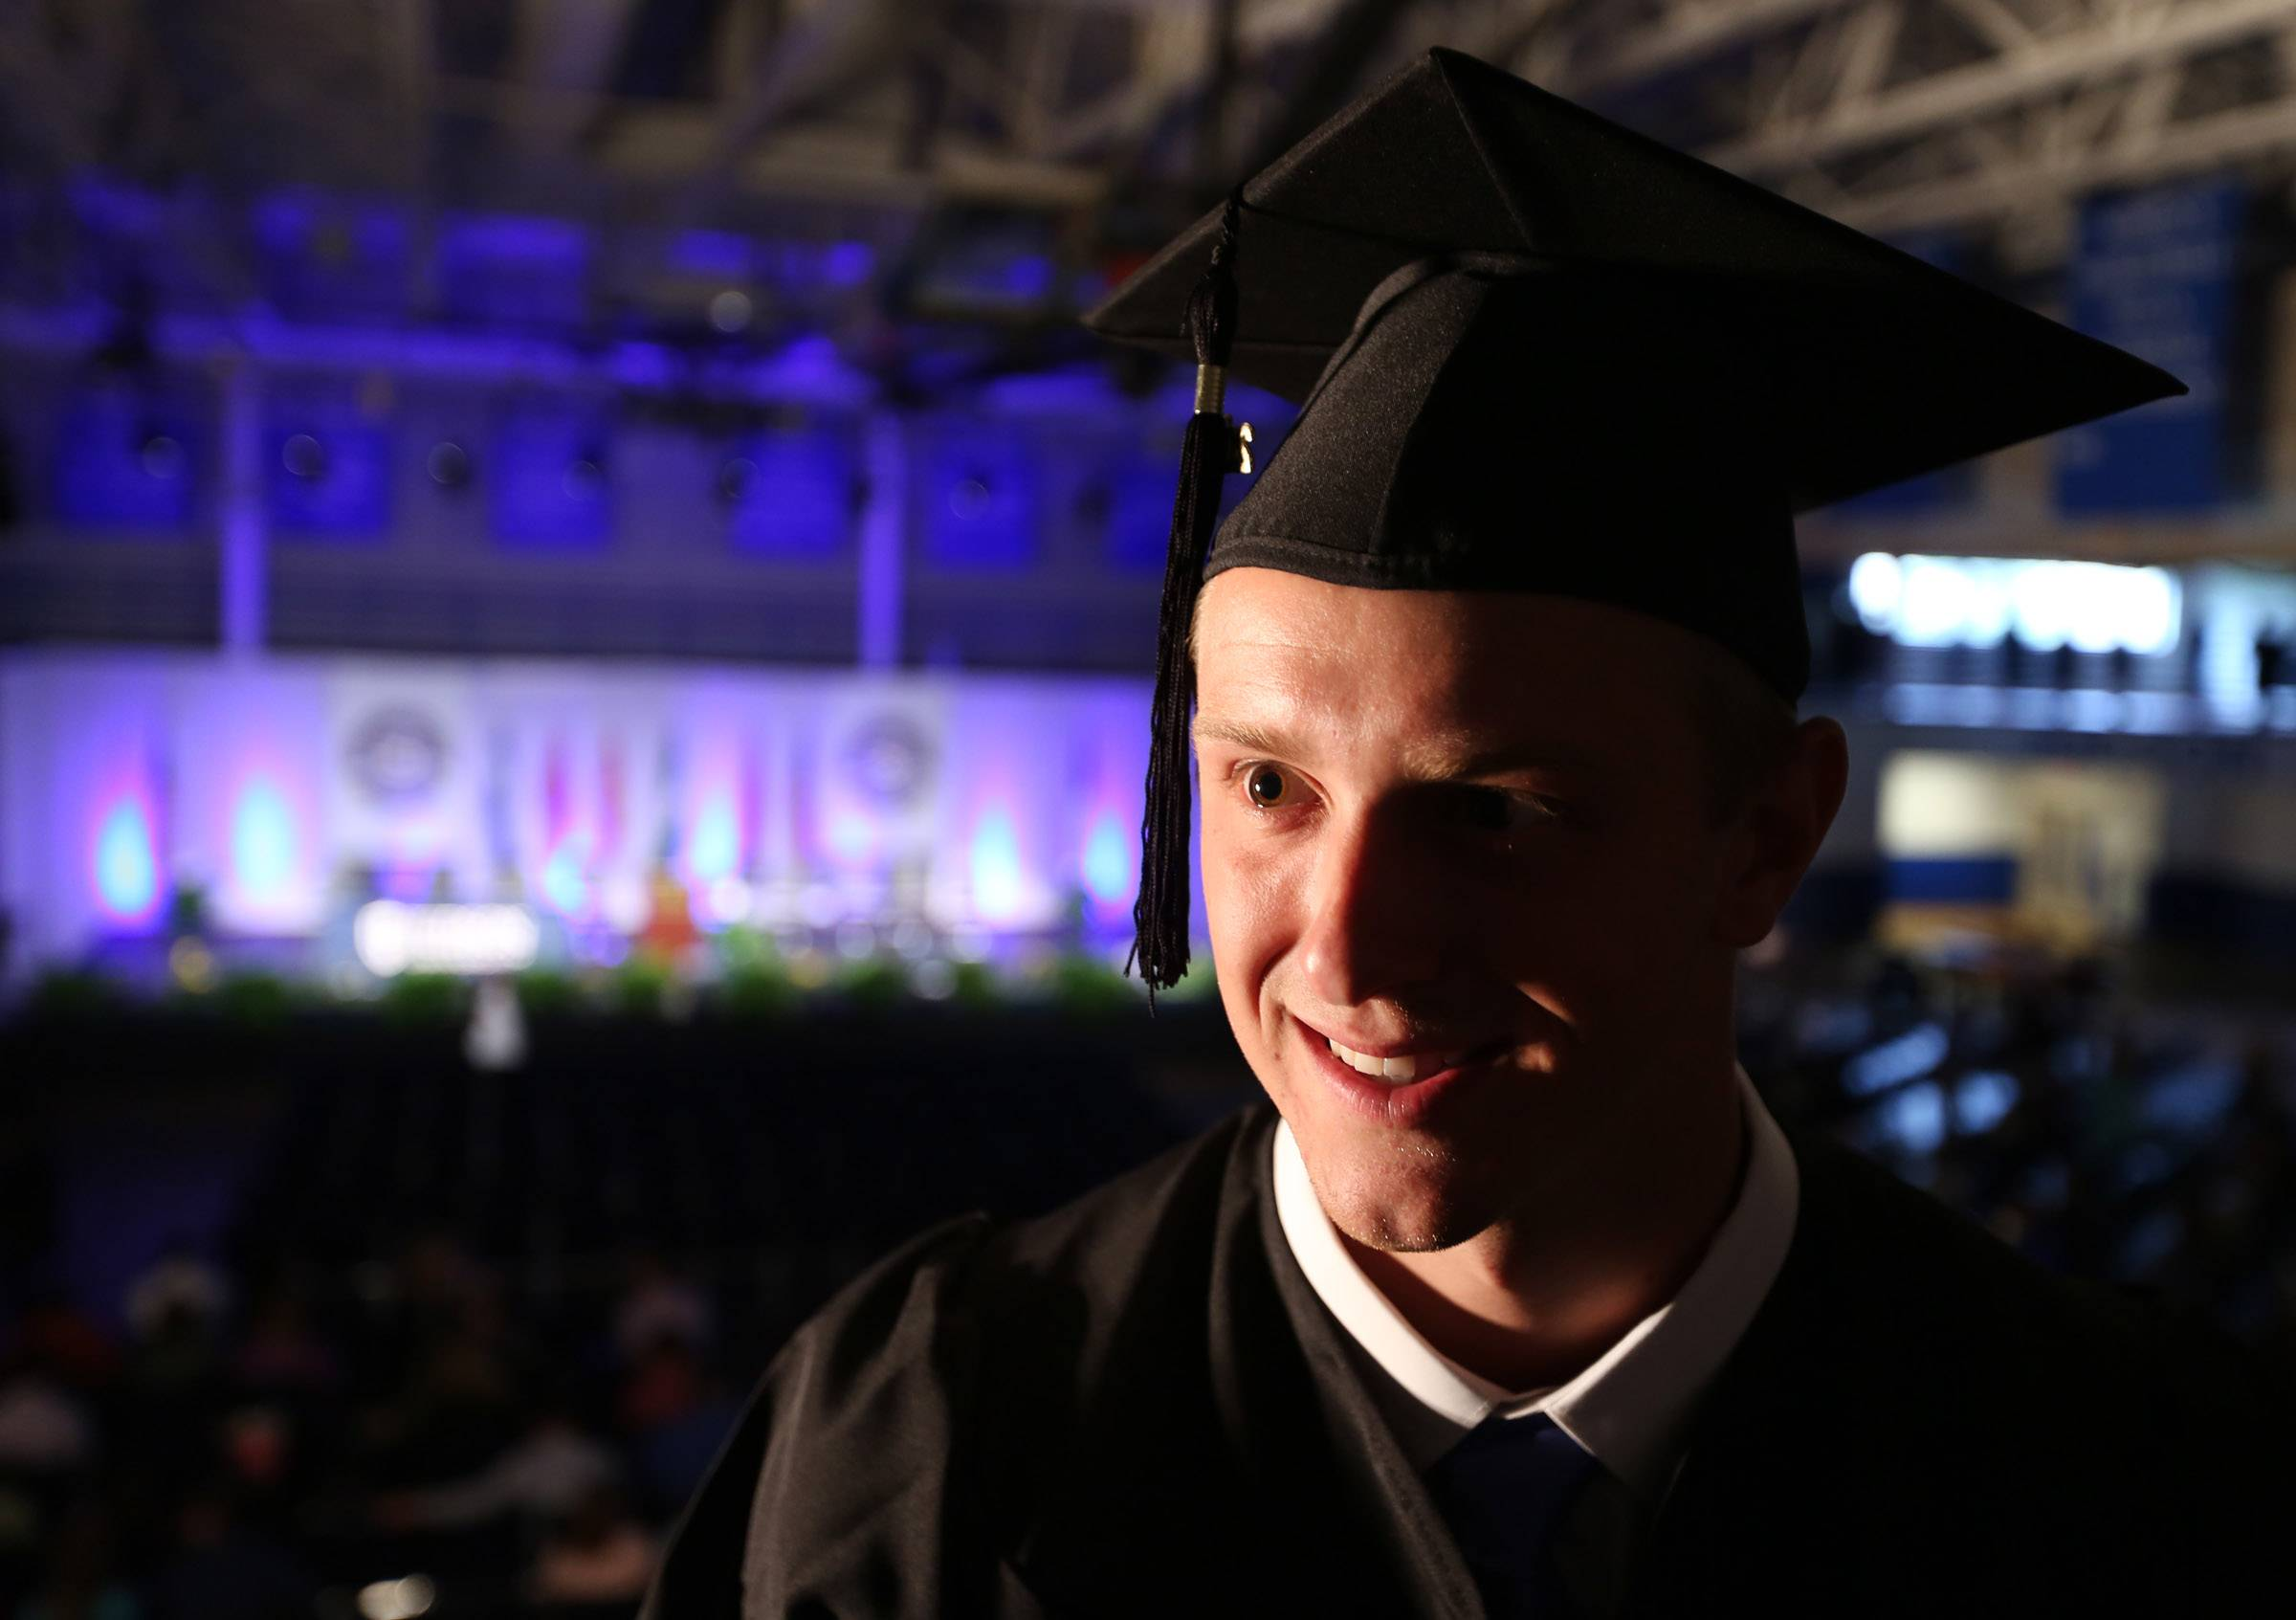 Judson University graduate Tim Schofield, 21, of Hoffman Estates, has a website and popular YouTube channel. One of his videos a year ago had 7 million views.